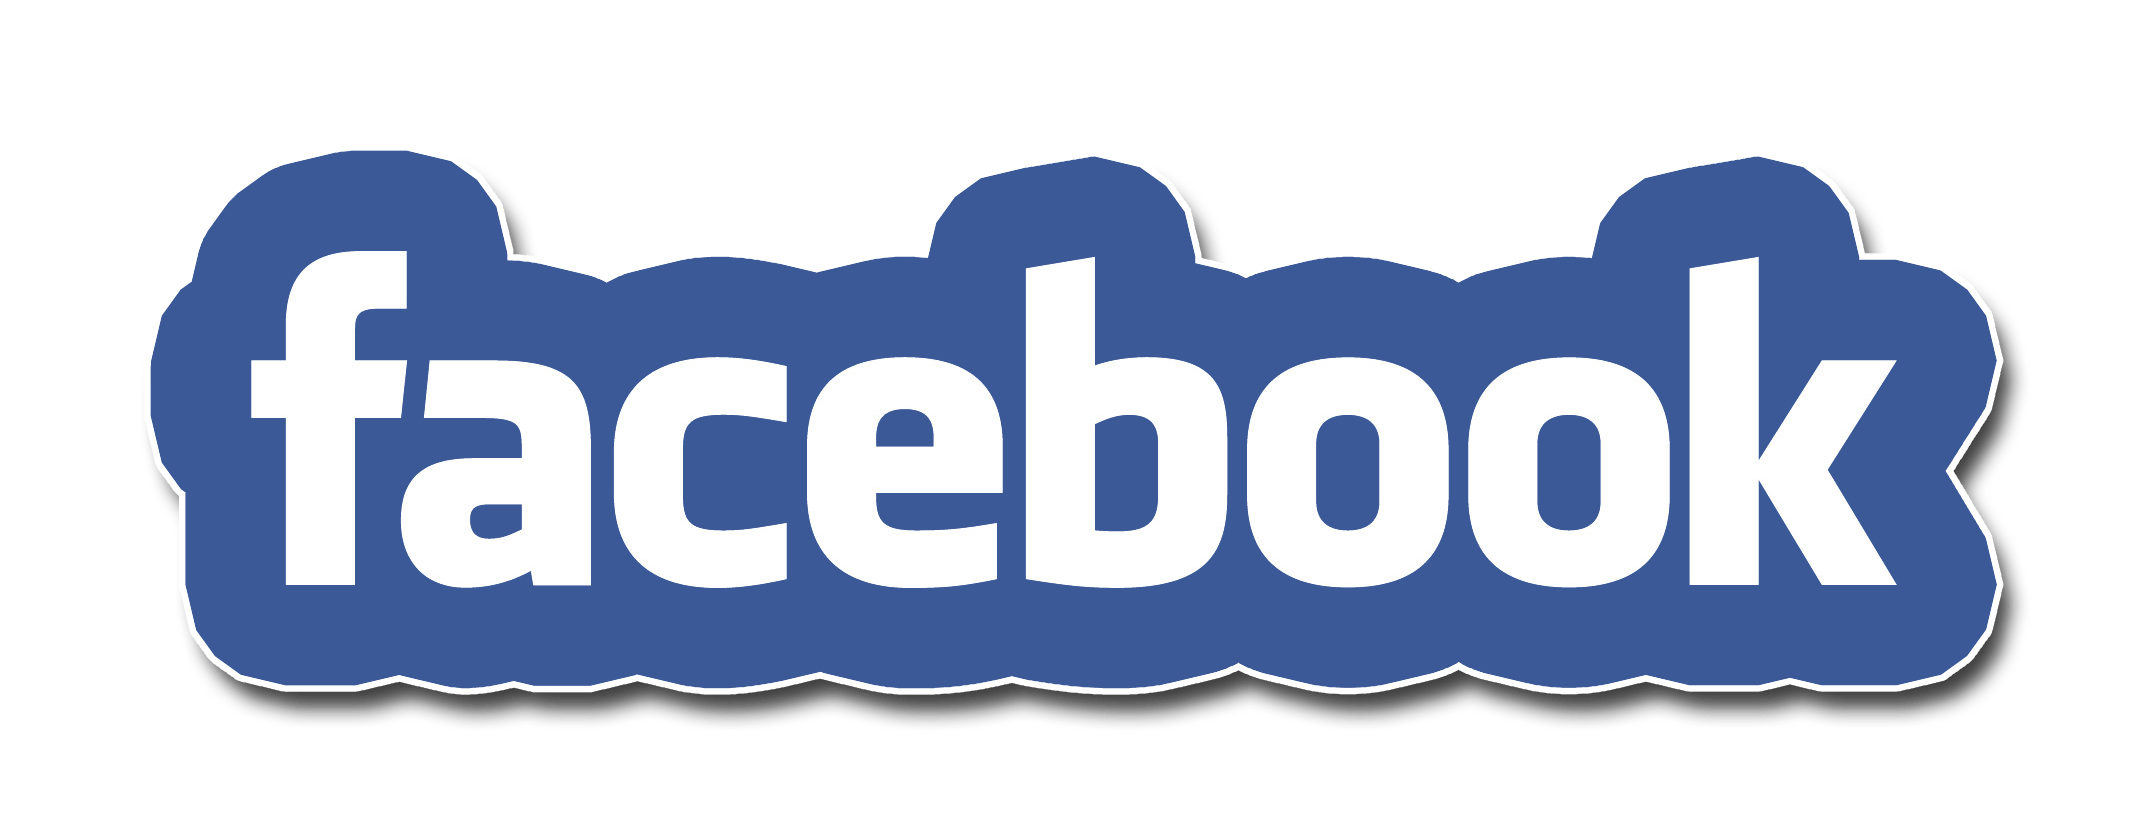 Facebook clipart for desktop image library library Facebook rolls out its new Weather App in desktop site and mobile app image library library